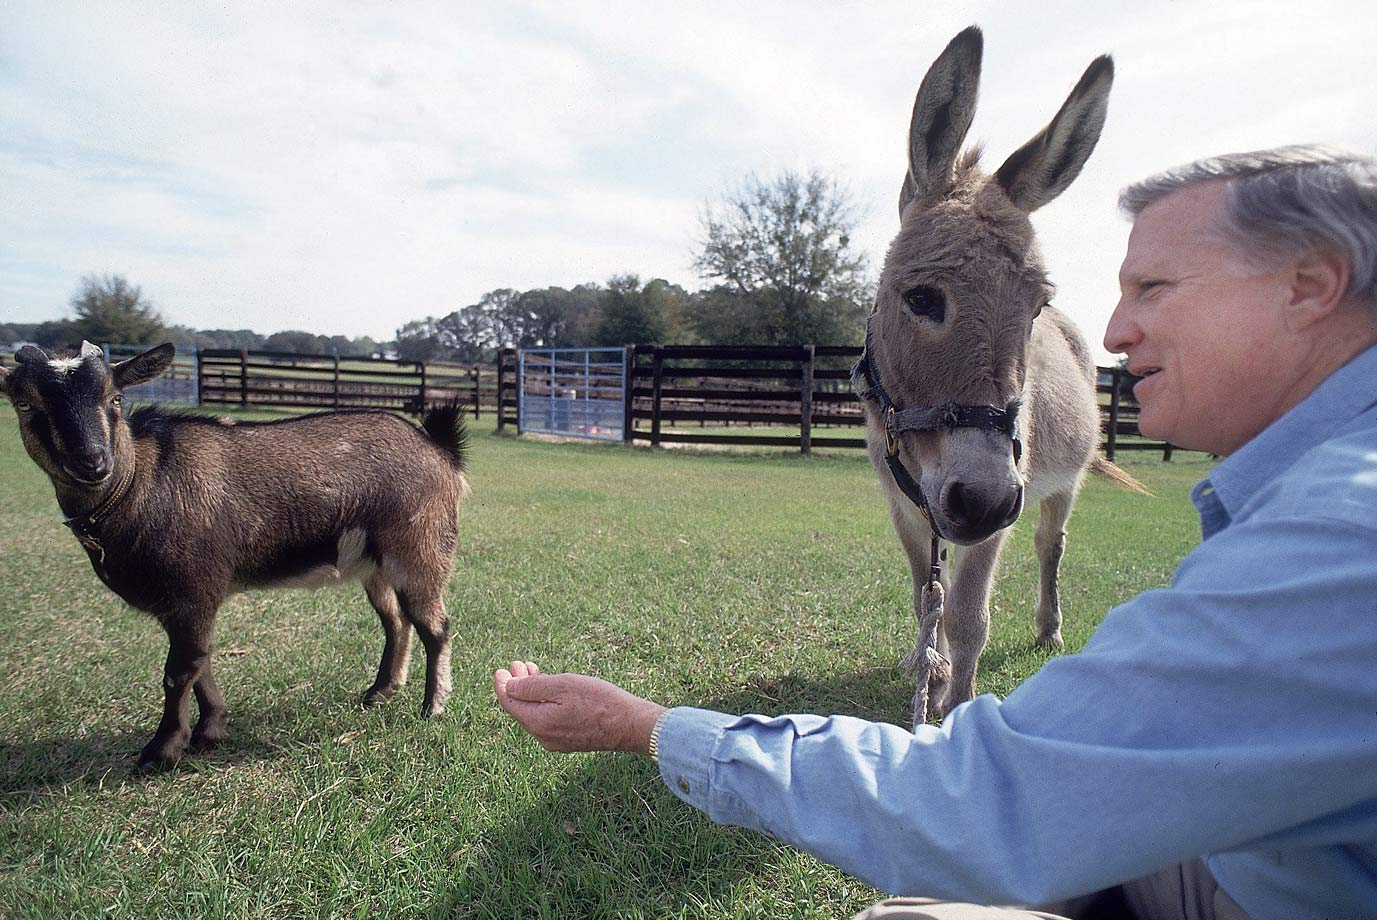 George Steinbrenner looks to feed his farm animals on Feb. 15, 1993 at his home in Tampa, Fla.